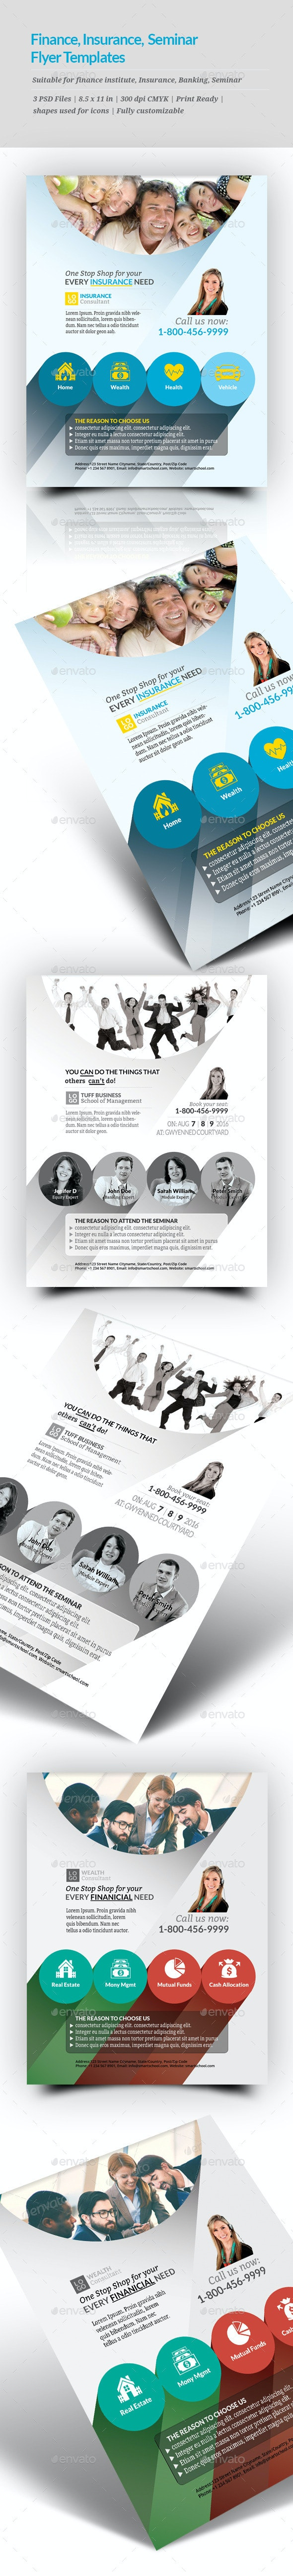 Finance, Insurance, Seminar Flyer Templates - Corporate Flyers